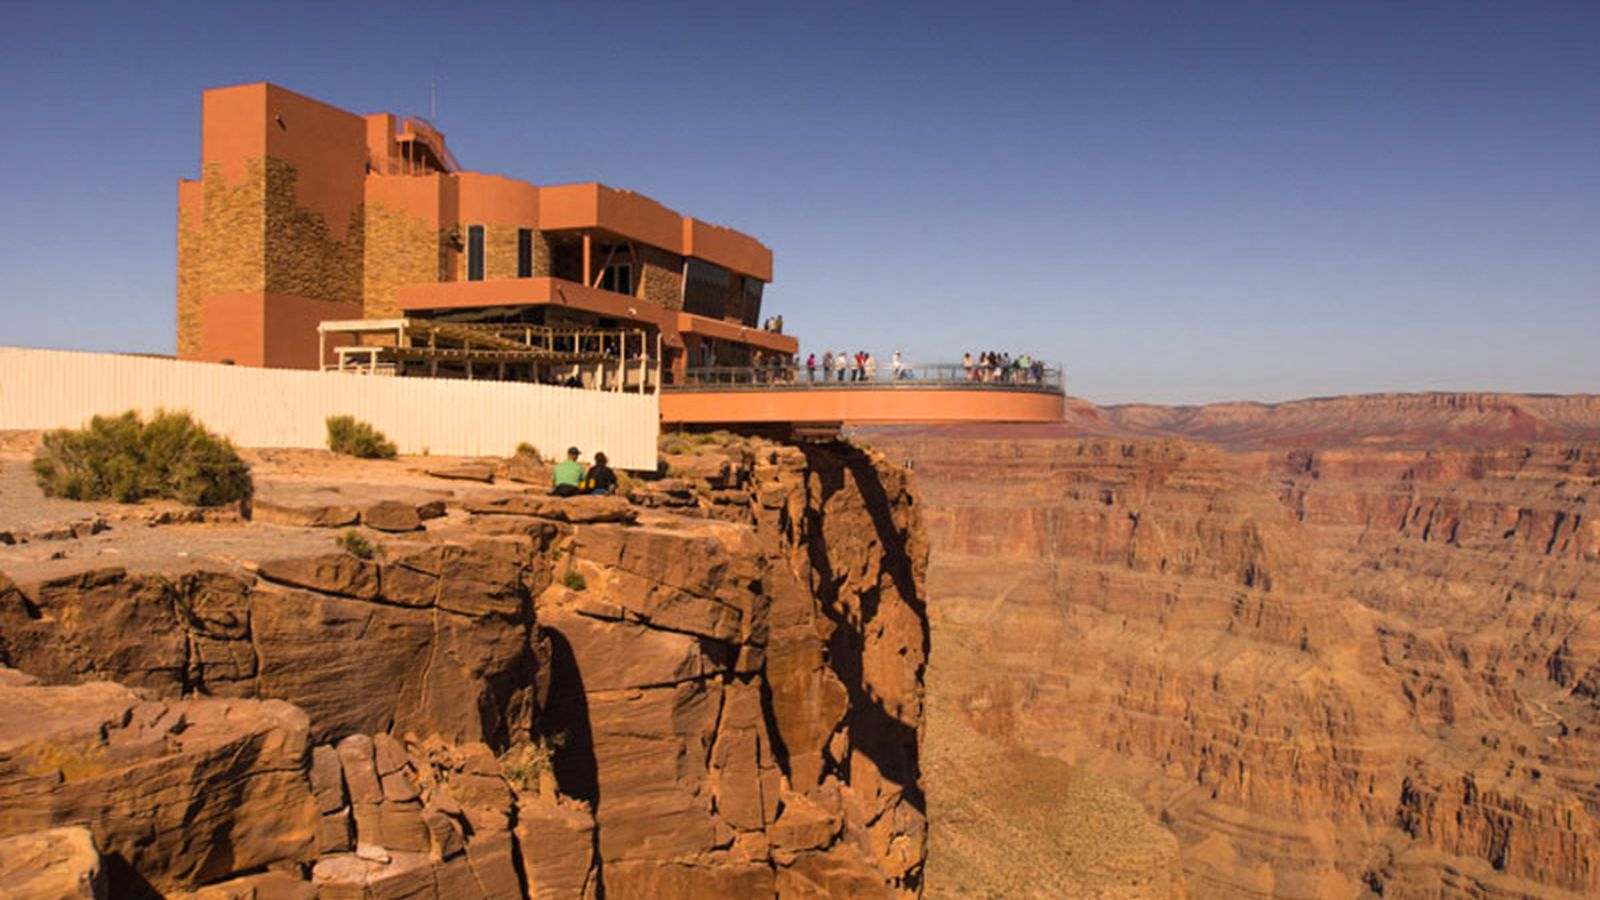 Sa_Nya_Wa__Grand_Canyon_Skywalk_Restaurant.0.jpeg (1600×900)